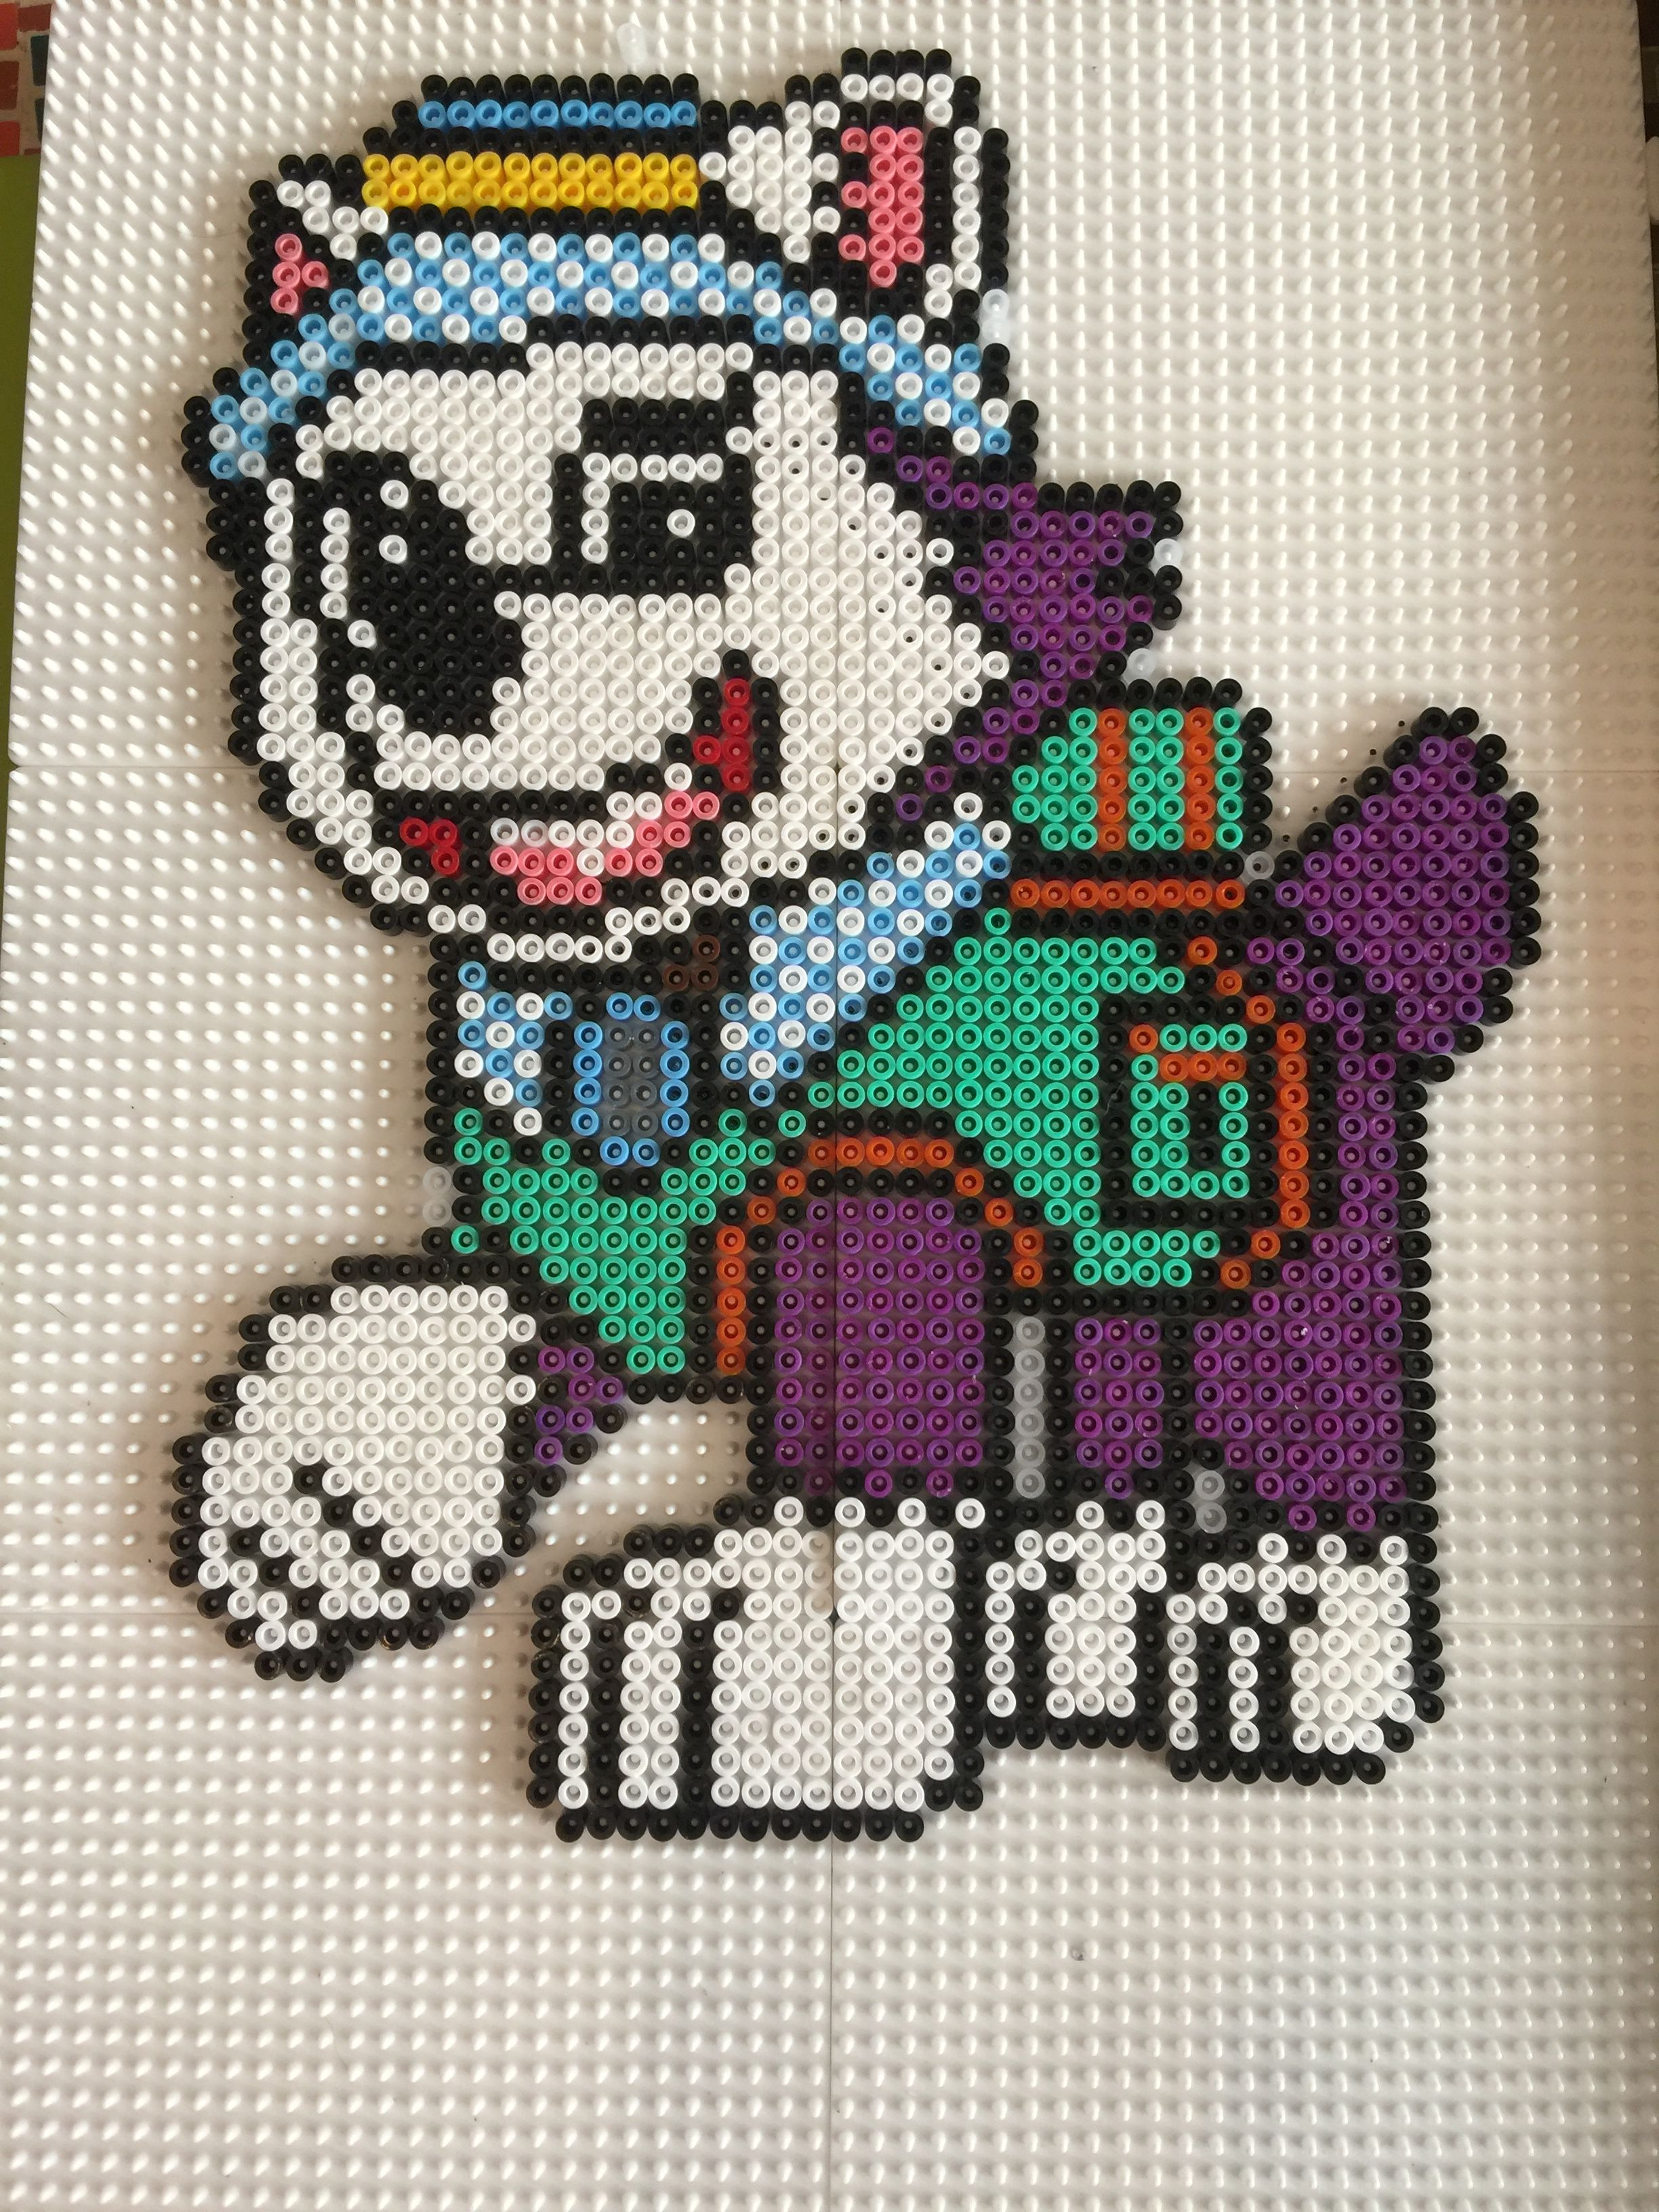 Skye From Paw Patrol Brick Multi Stitch Pattern 7